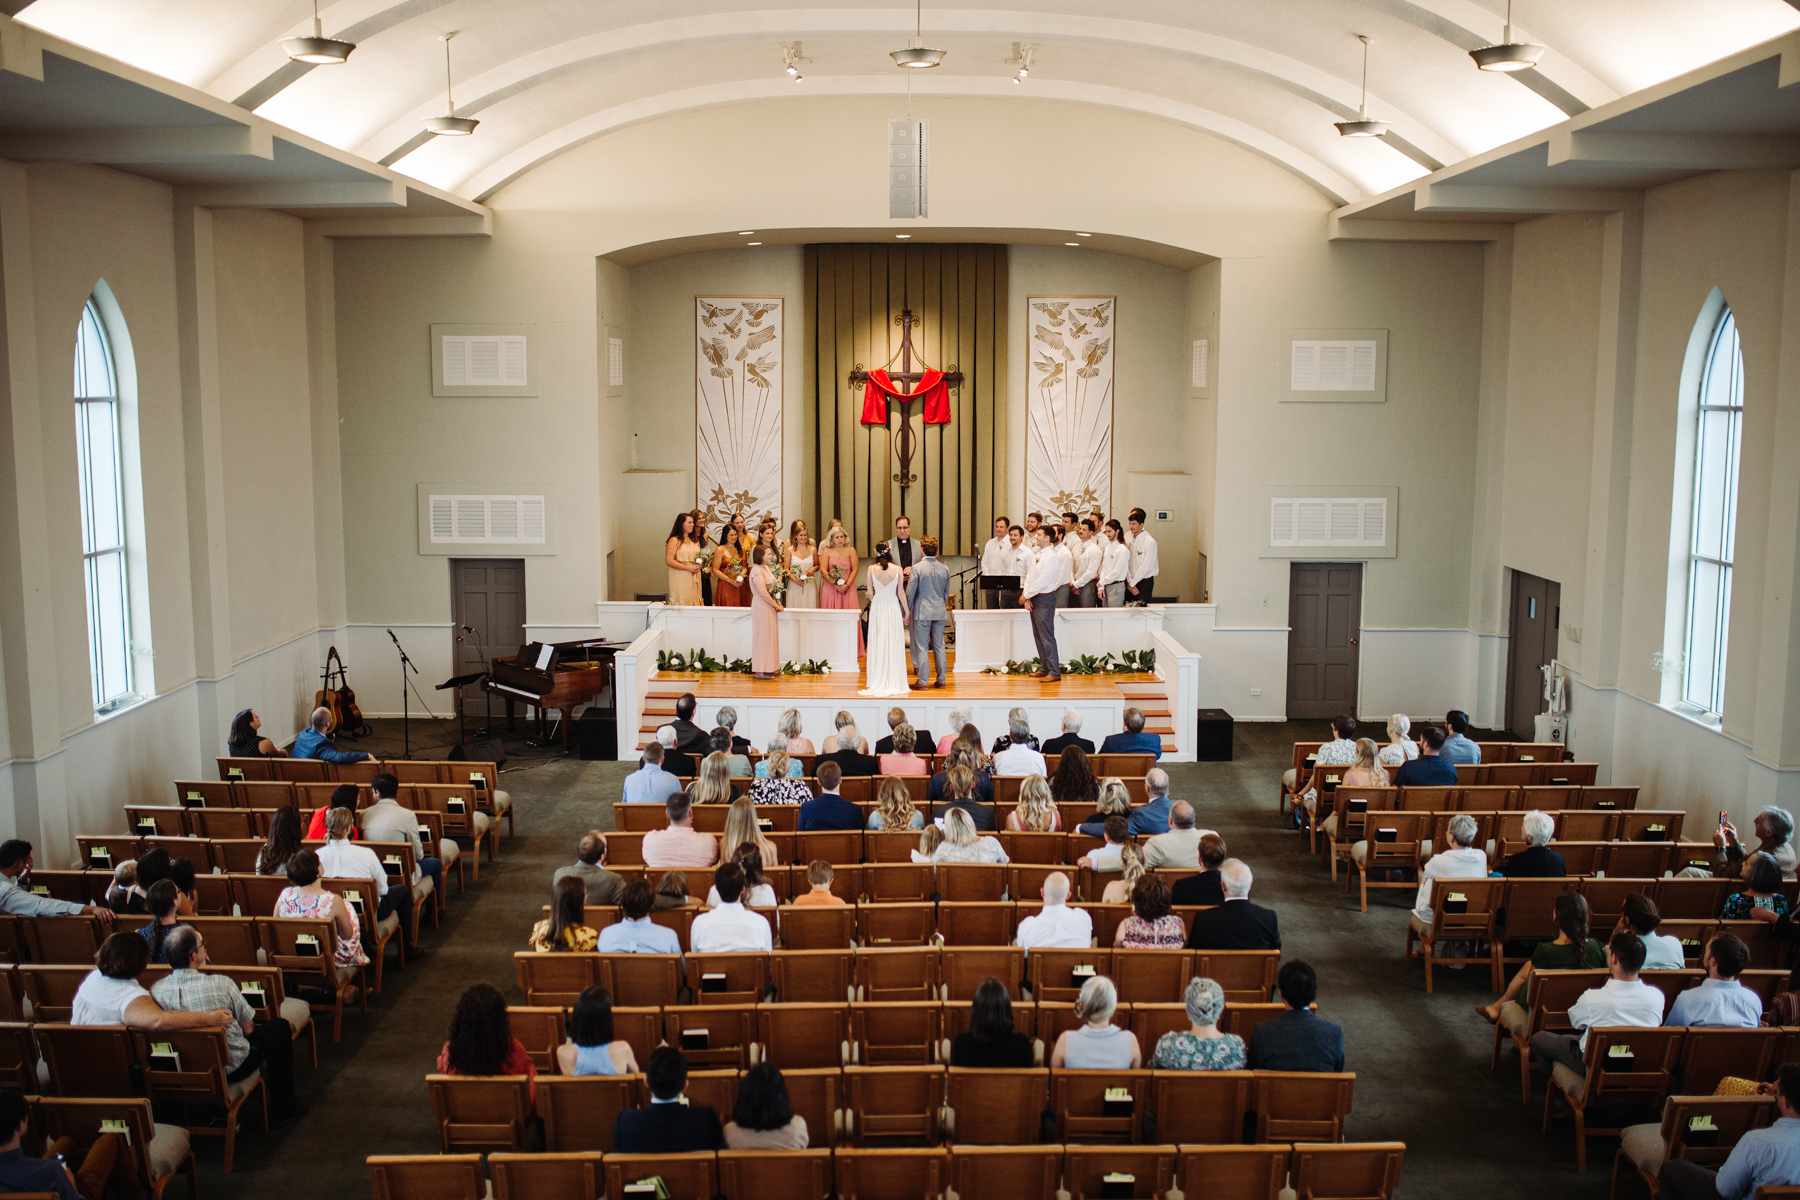 Wedding ceremony at Redeemer Church in downtown Knoxville, Tennessee